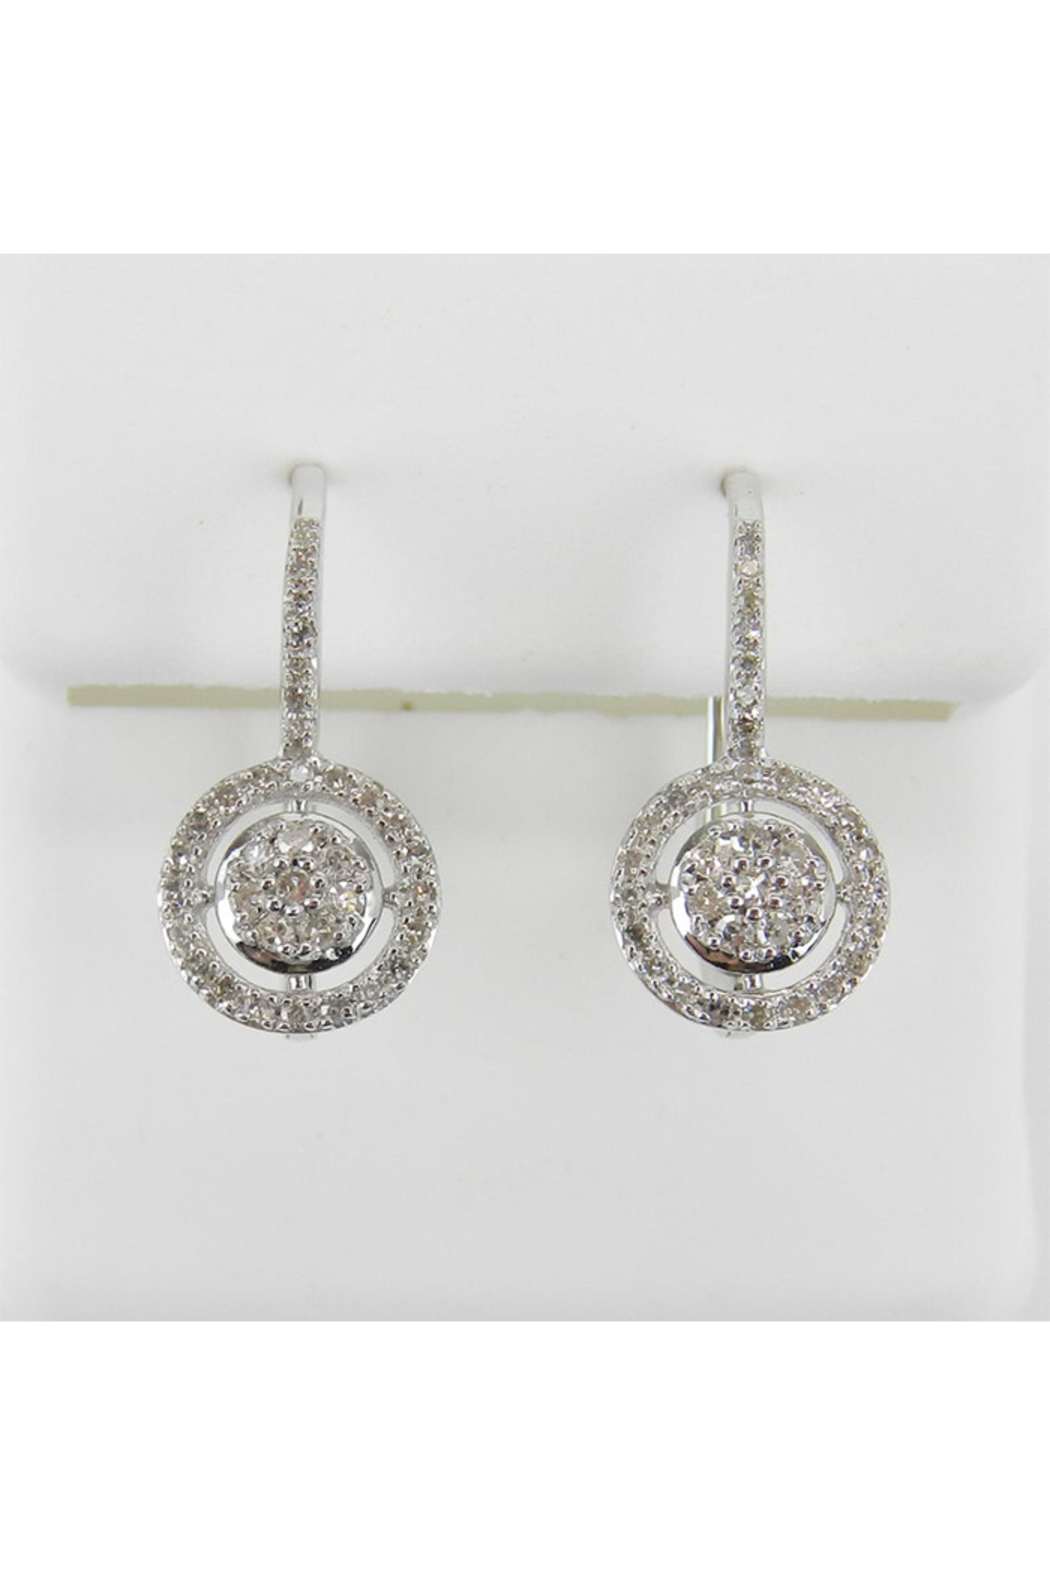 Margolin & Co White Gold Diamond Cluster Halo Drop Earrings Leverback Wedding Gift - Main Image